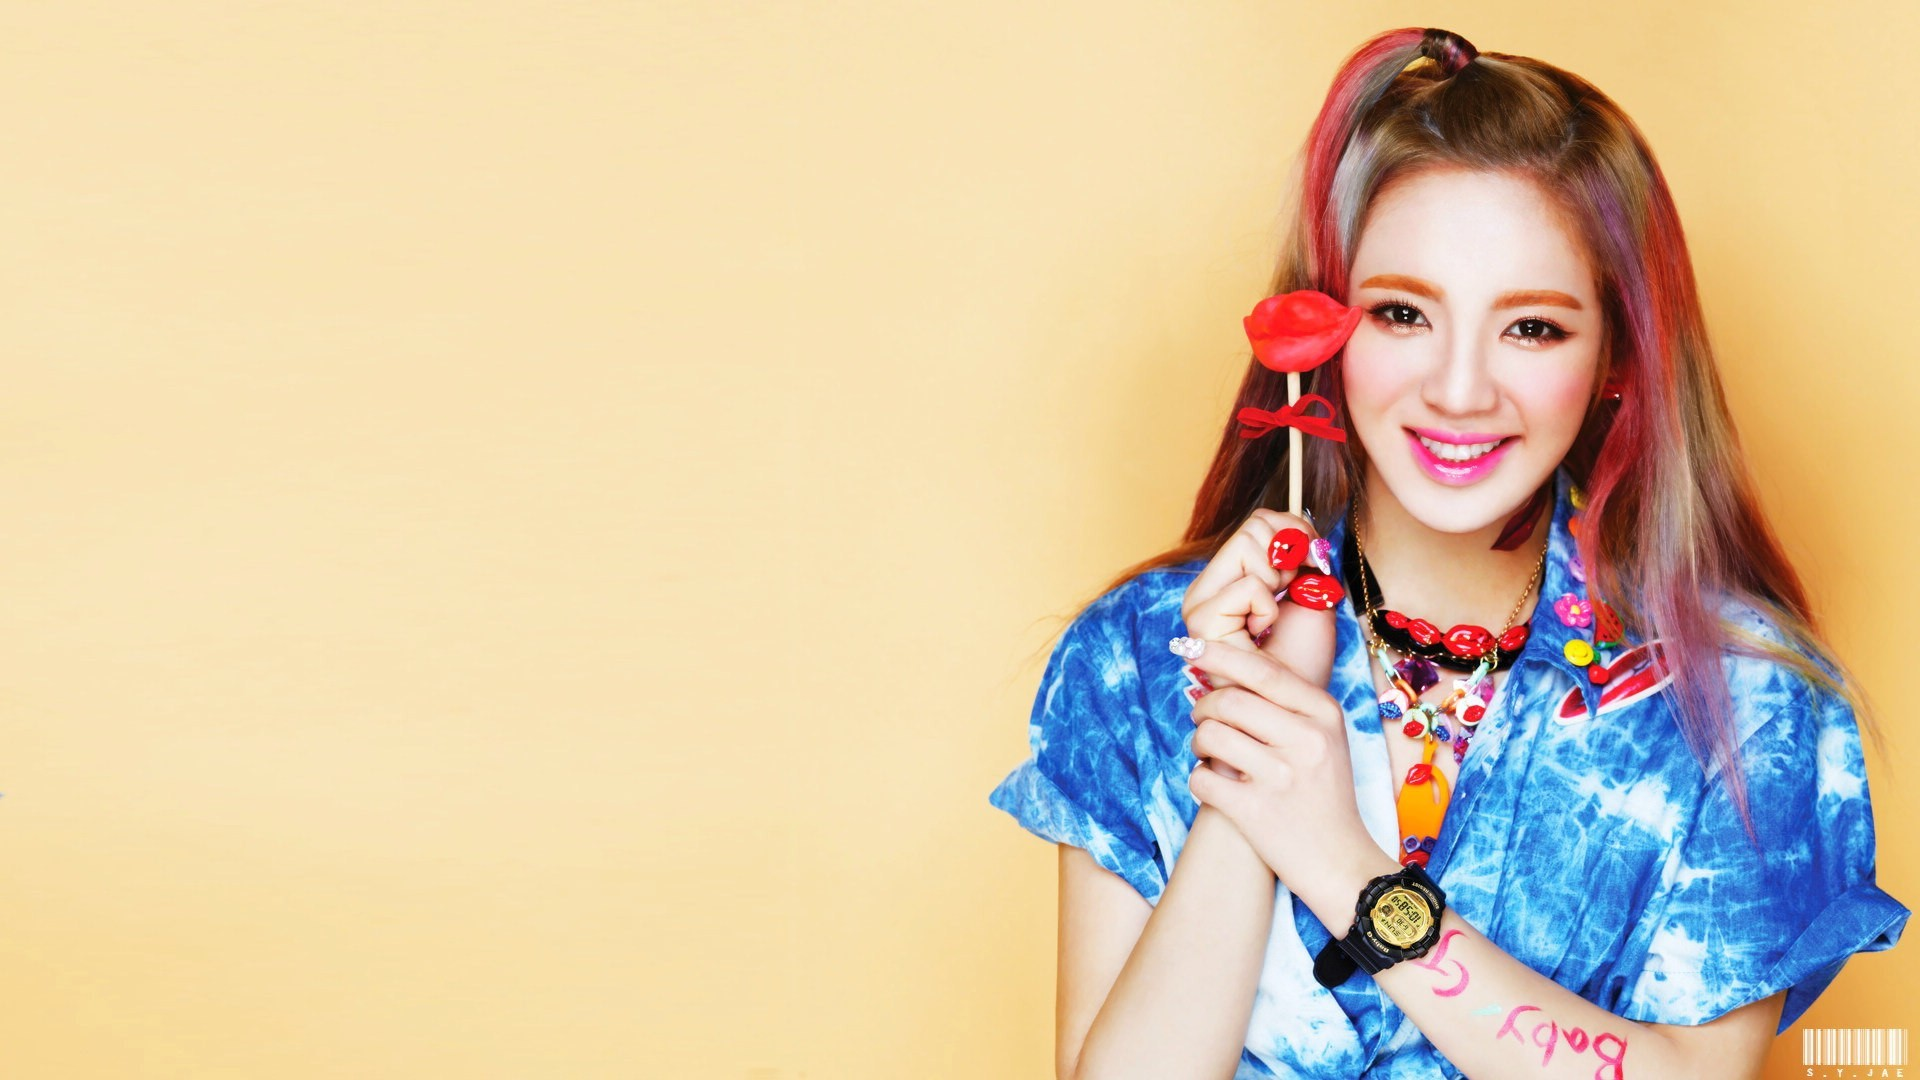 Res: 1920x1080, SNSD Hyoyeon Pictures Collection HD Desktop Wallpaper, Background Image